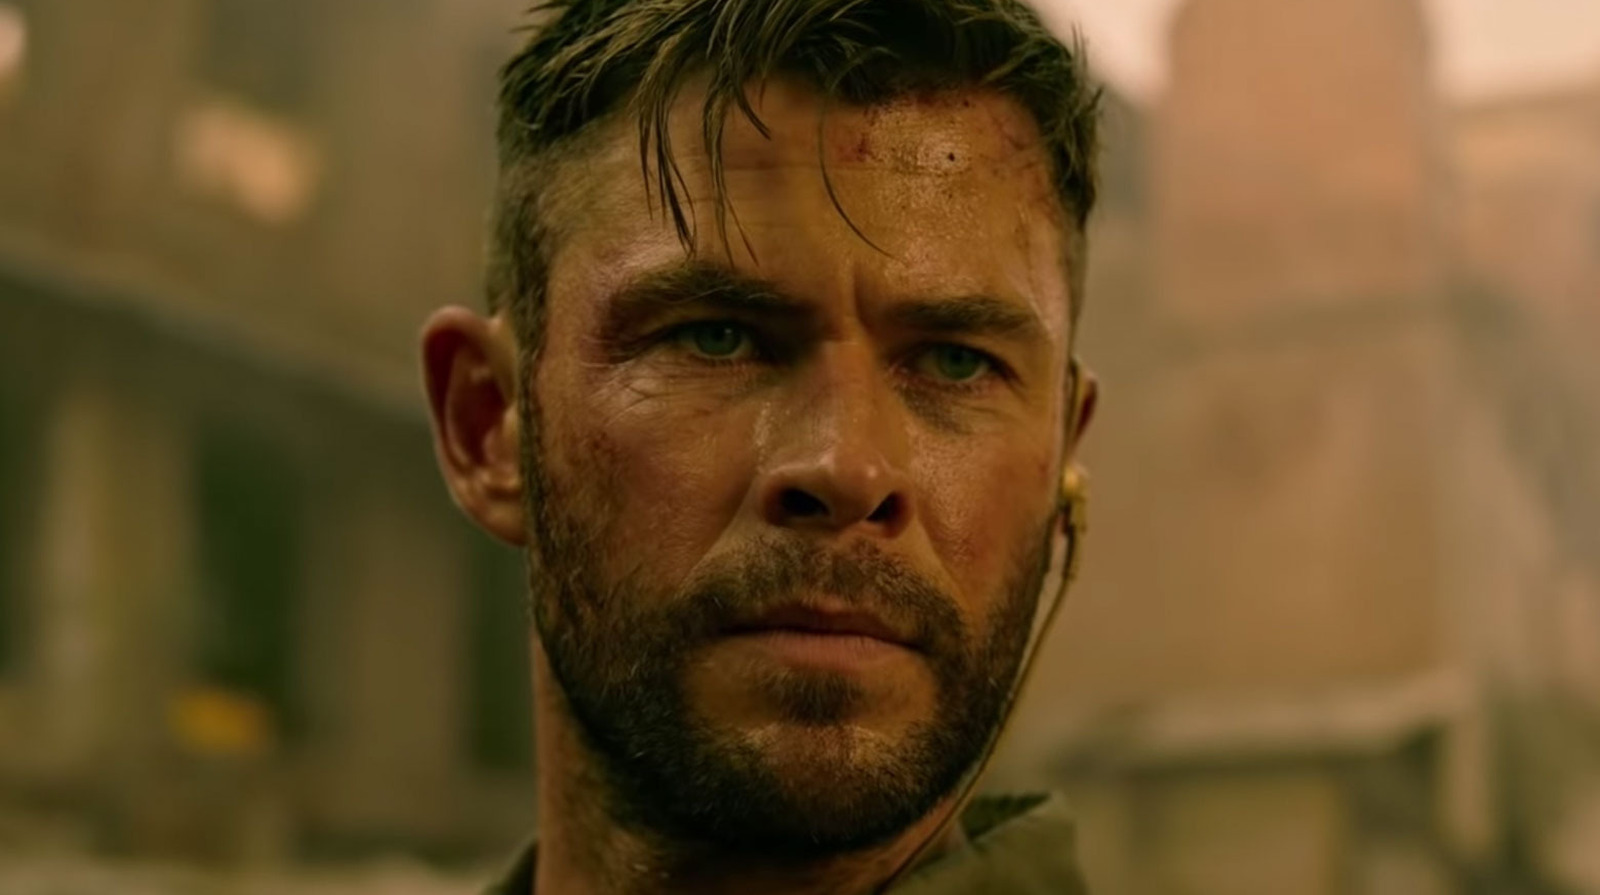 20 Best Action Movies On Netflix [October 20]